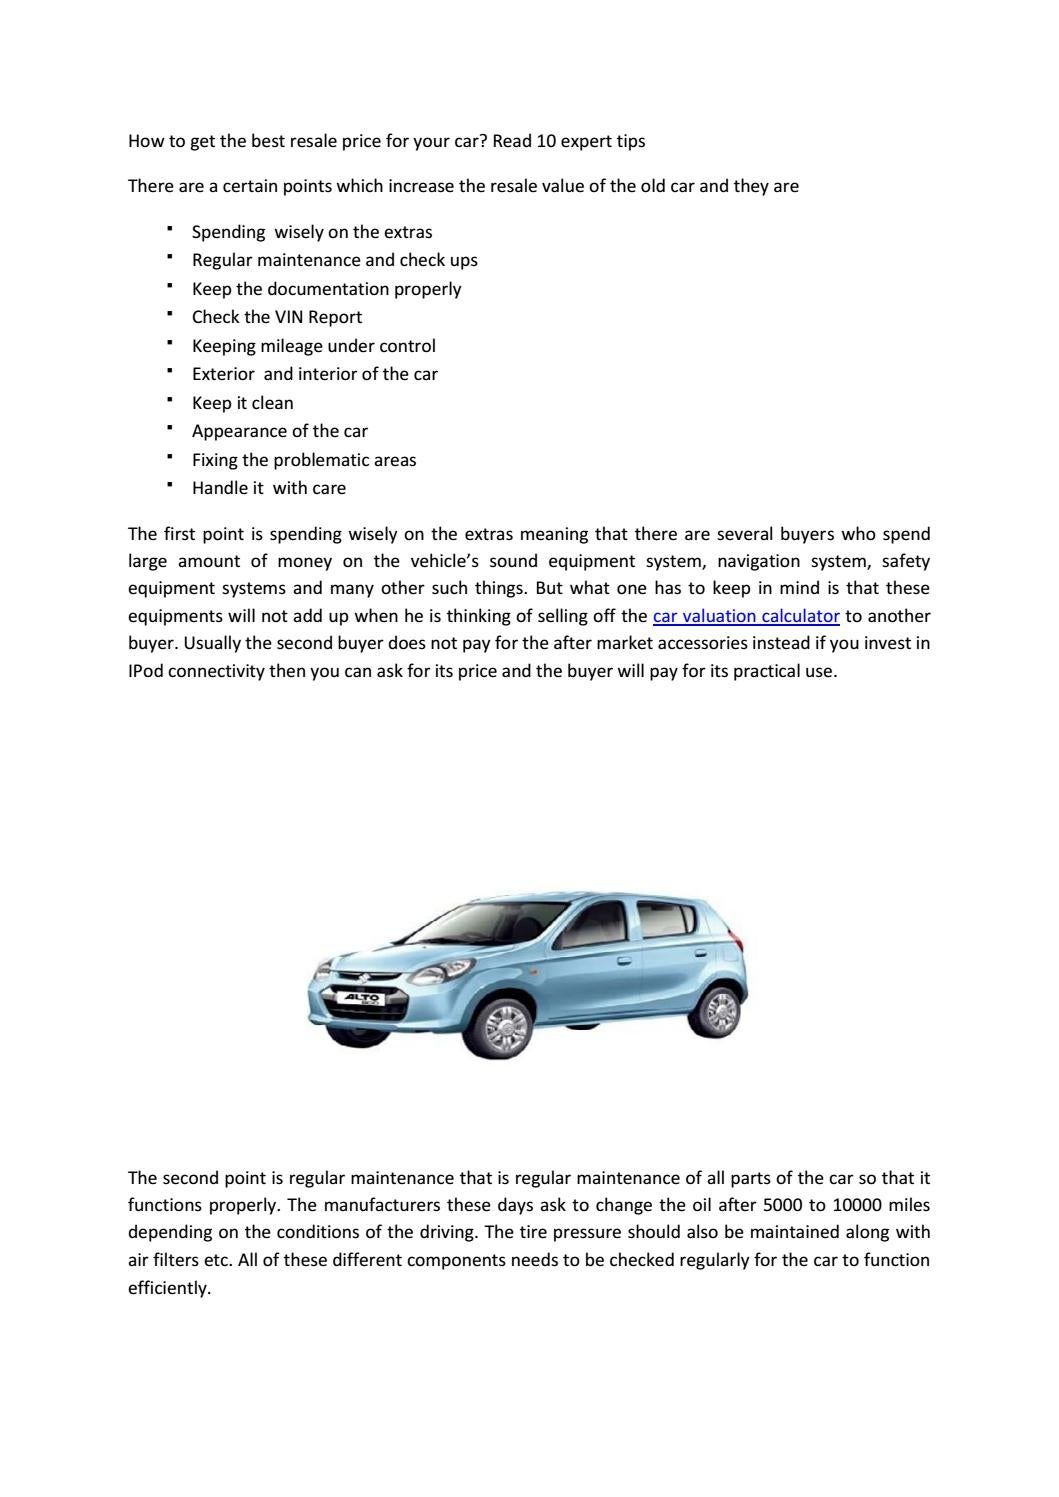 How To Get The Best Resale Price For Your Car By Indianbluebook Issuu